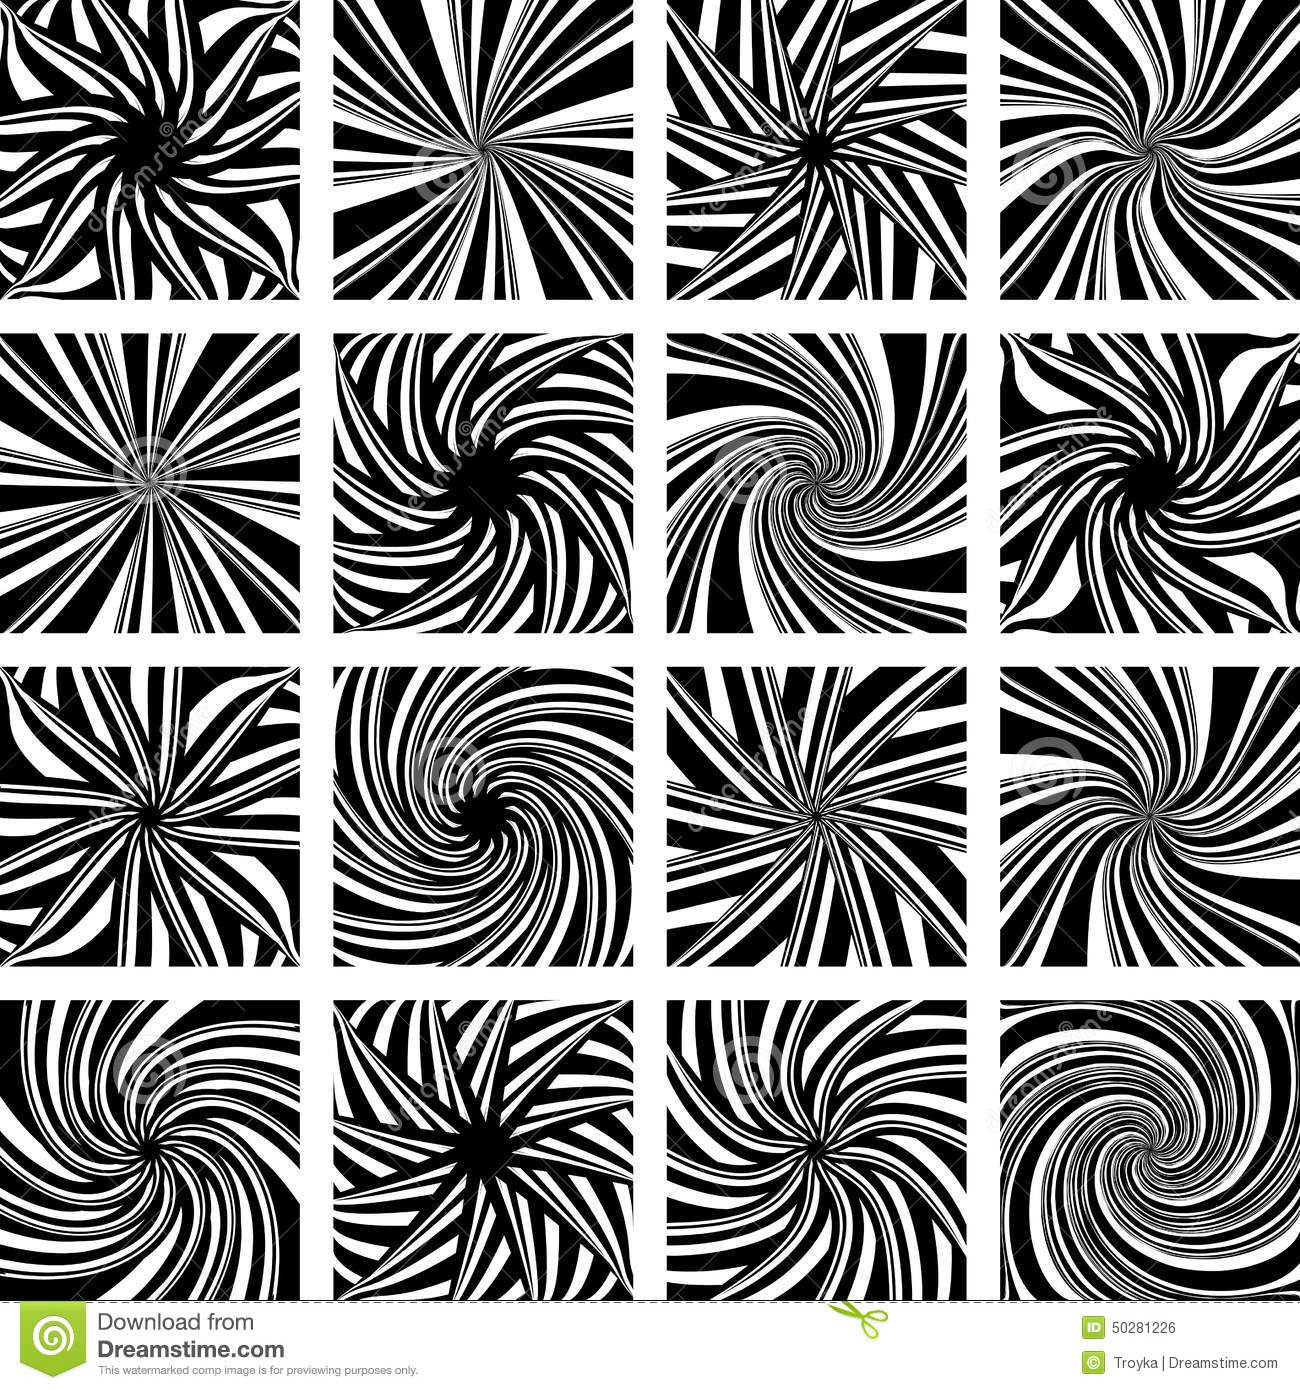 Elements Of Design Movement : Rotation and twisting movement design elements stock